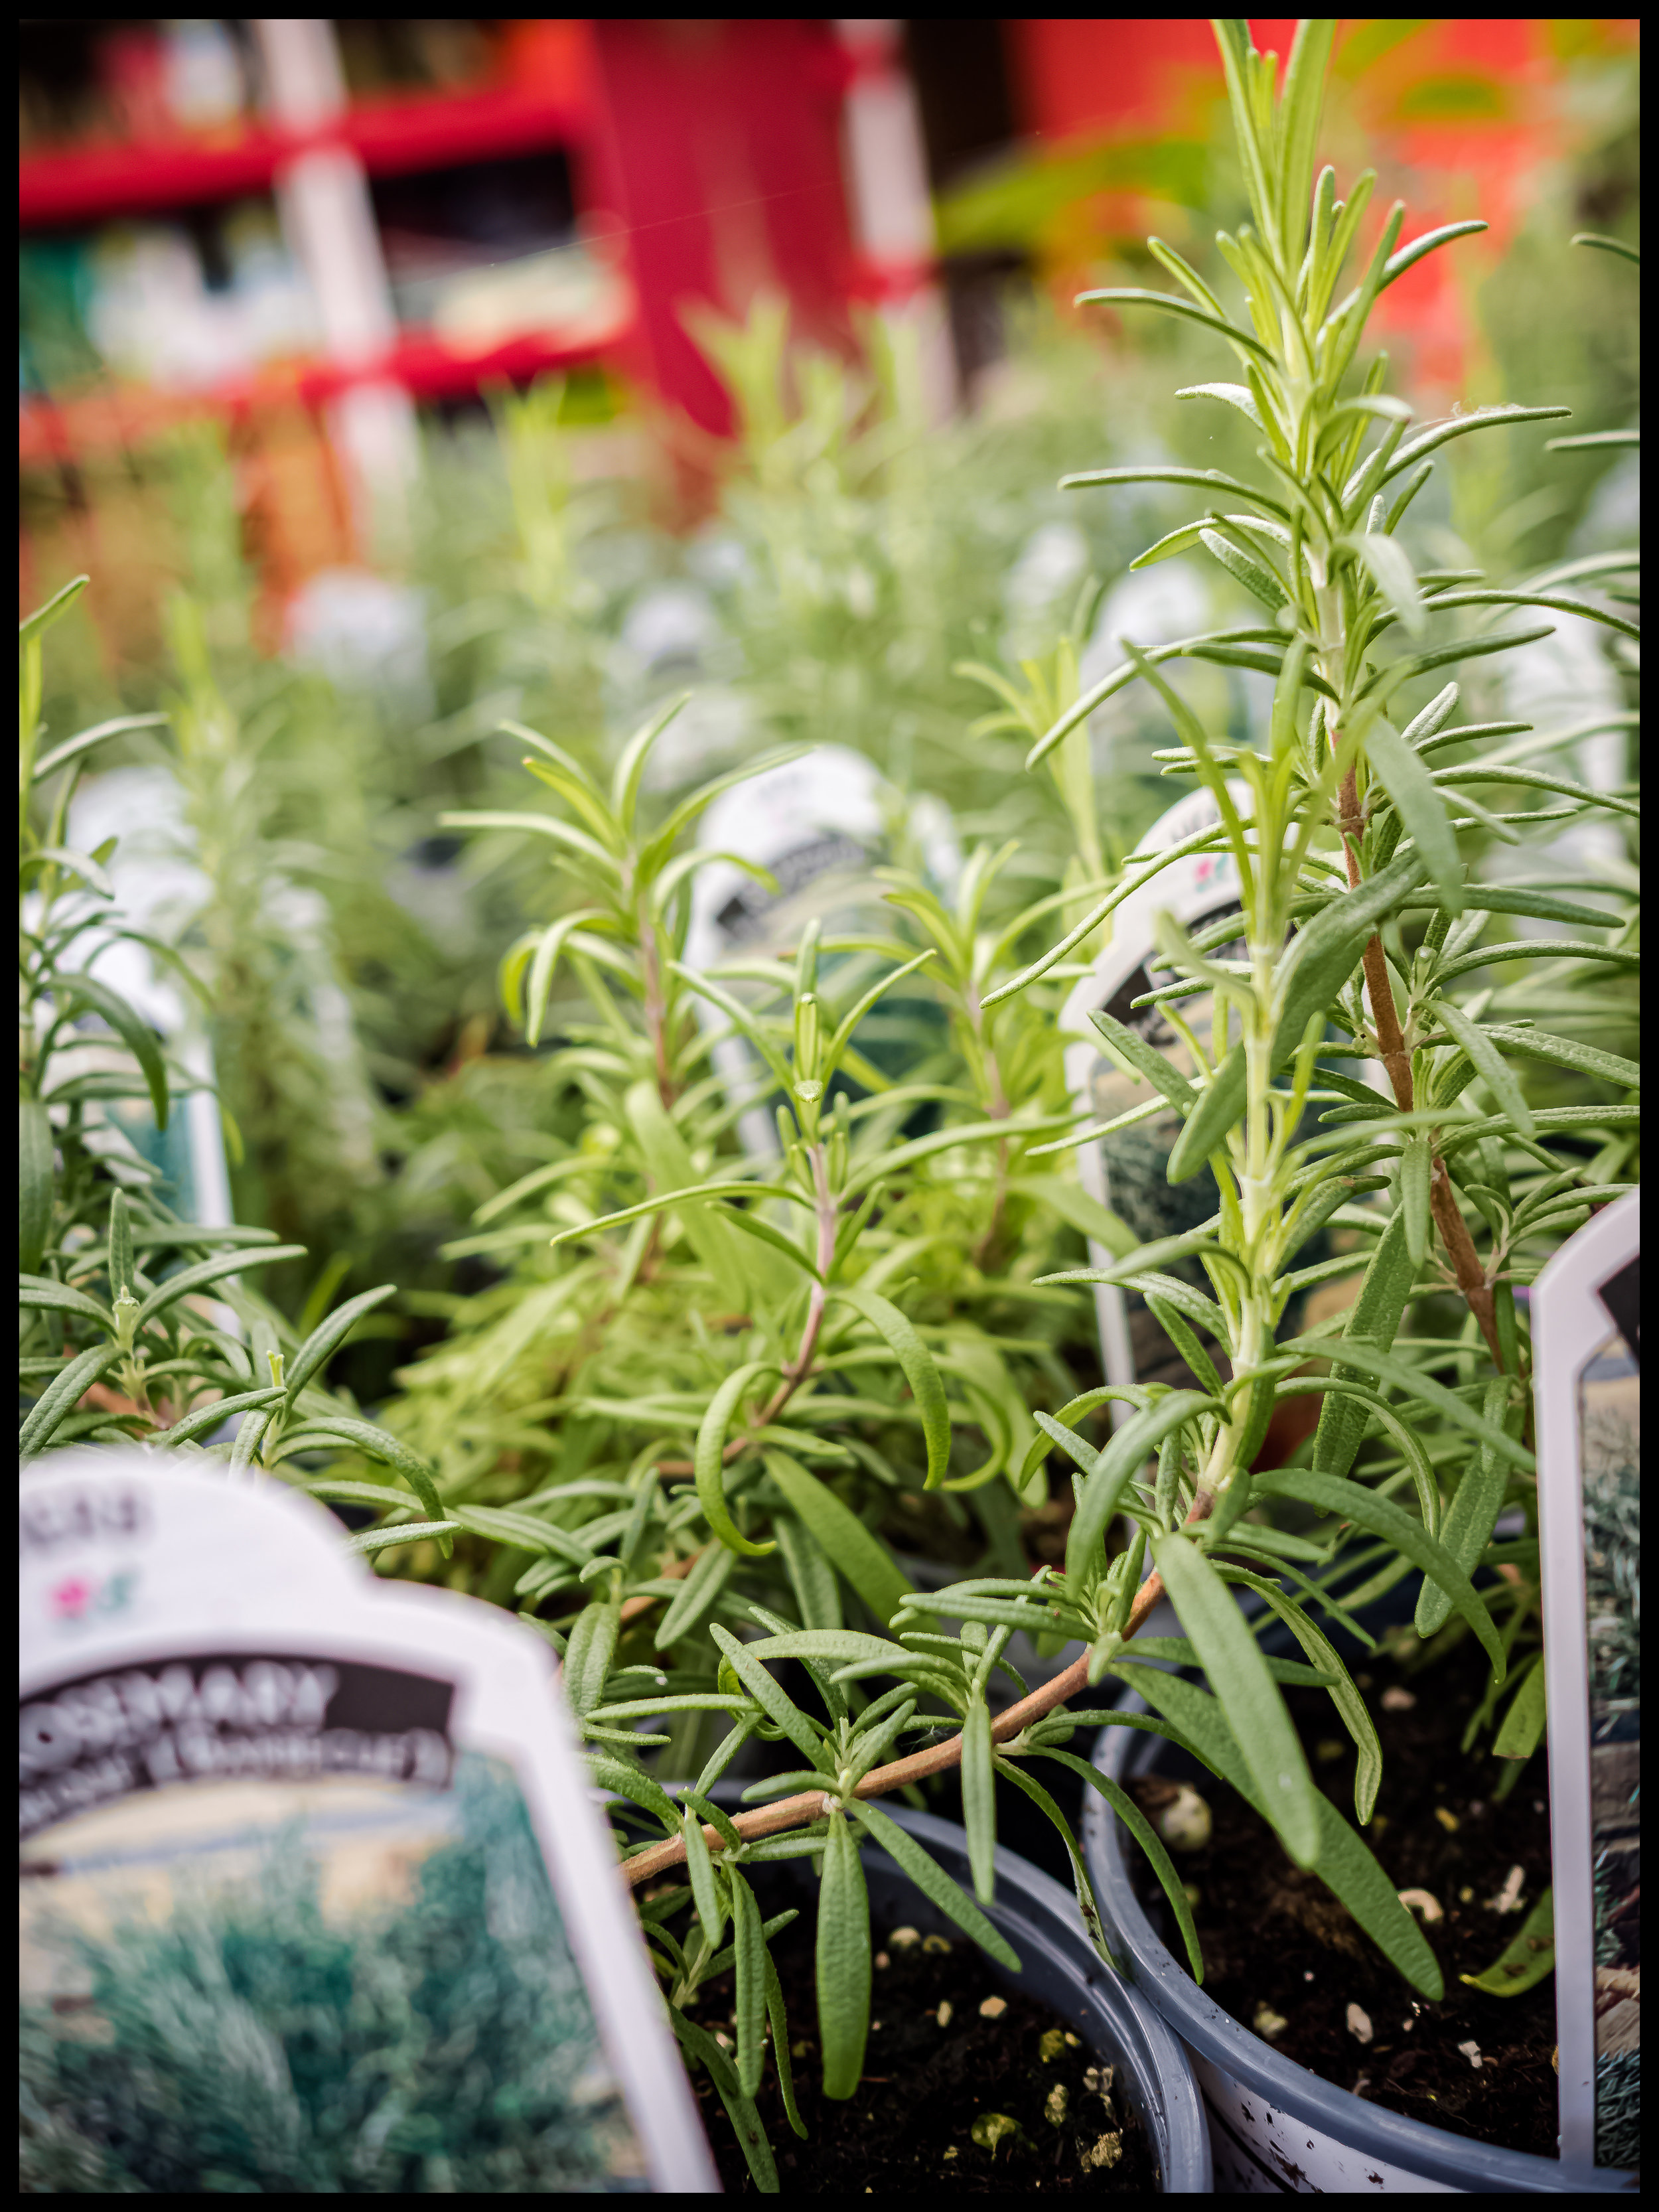 Rosemary is a very versatile herb that goes very well with Vegetables, especially potatoes